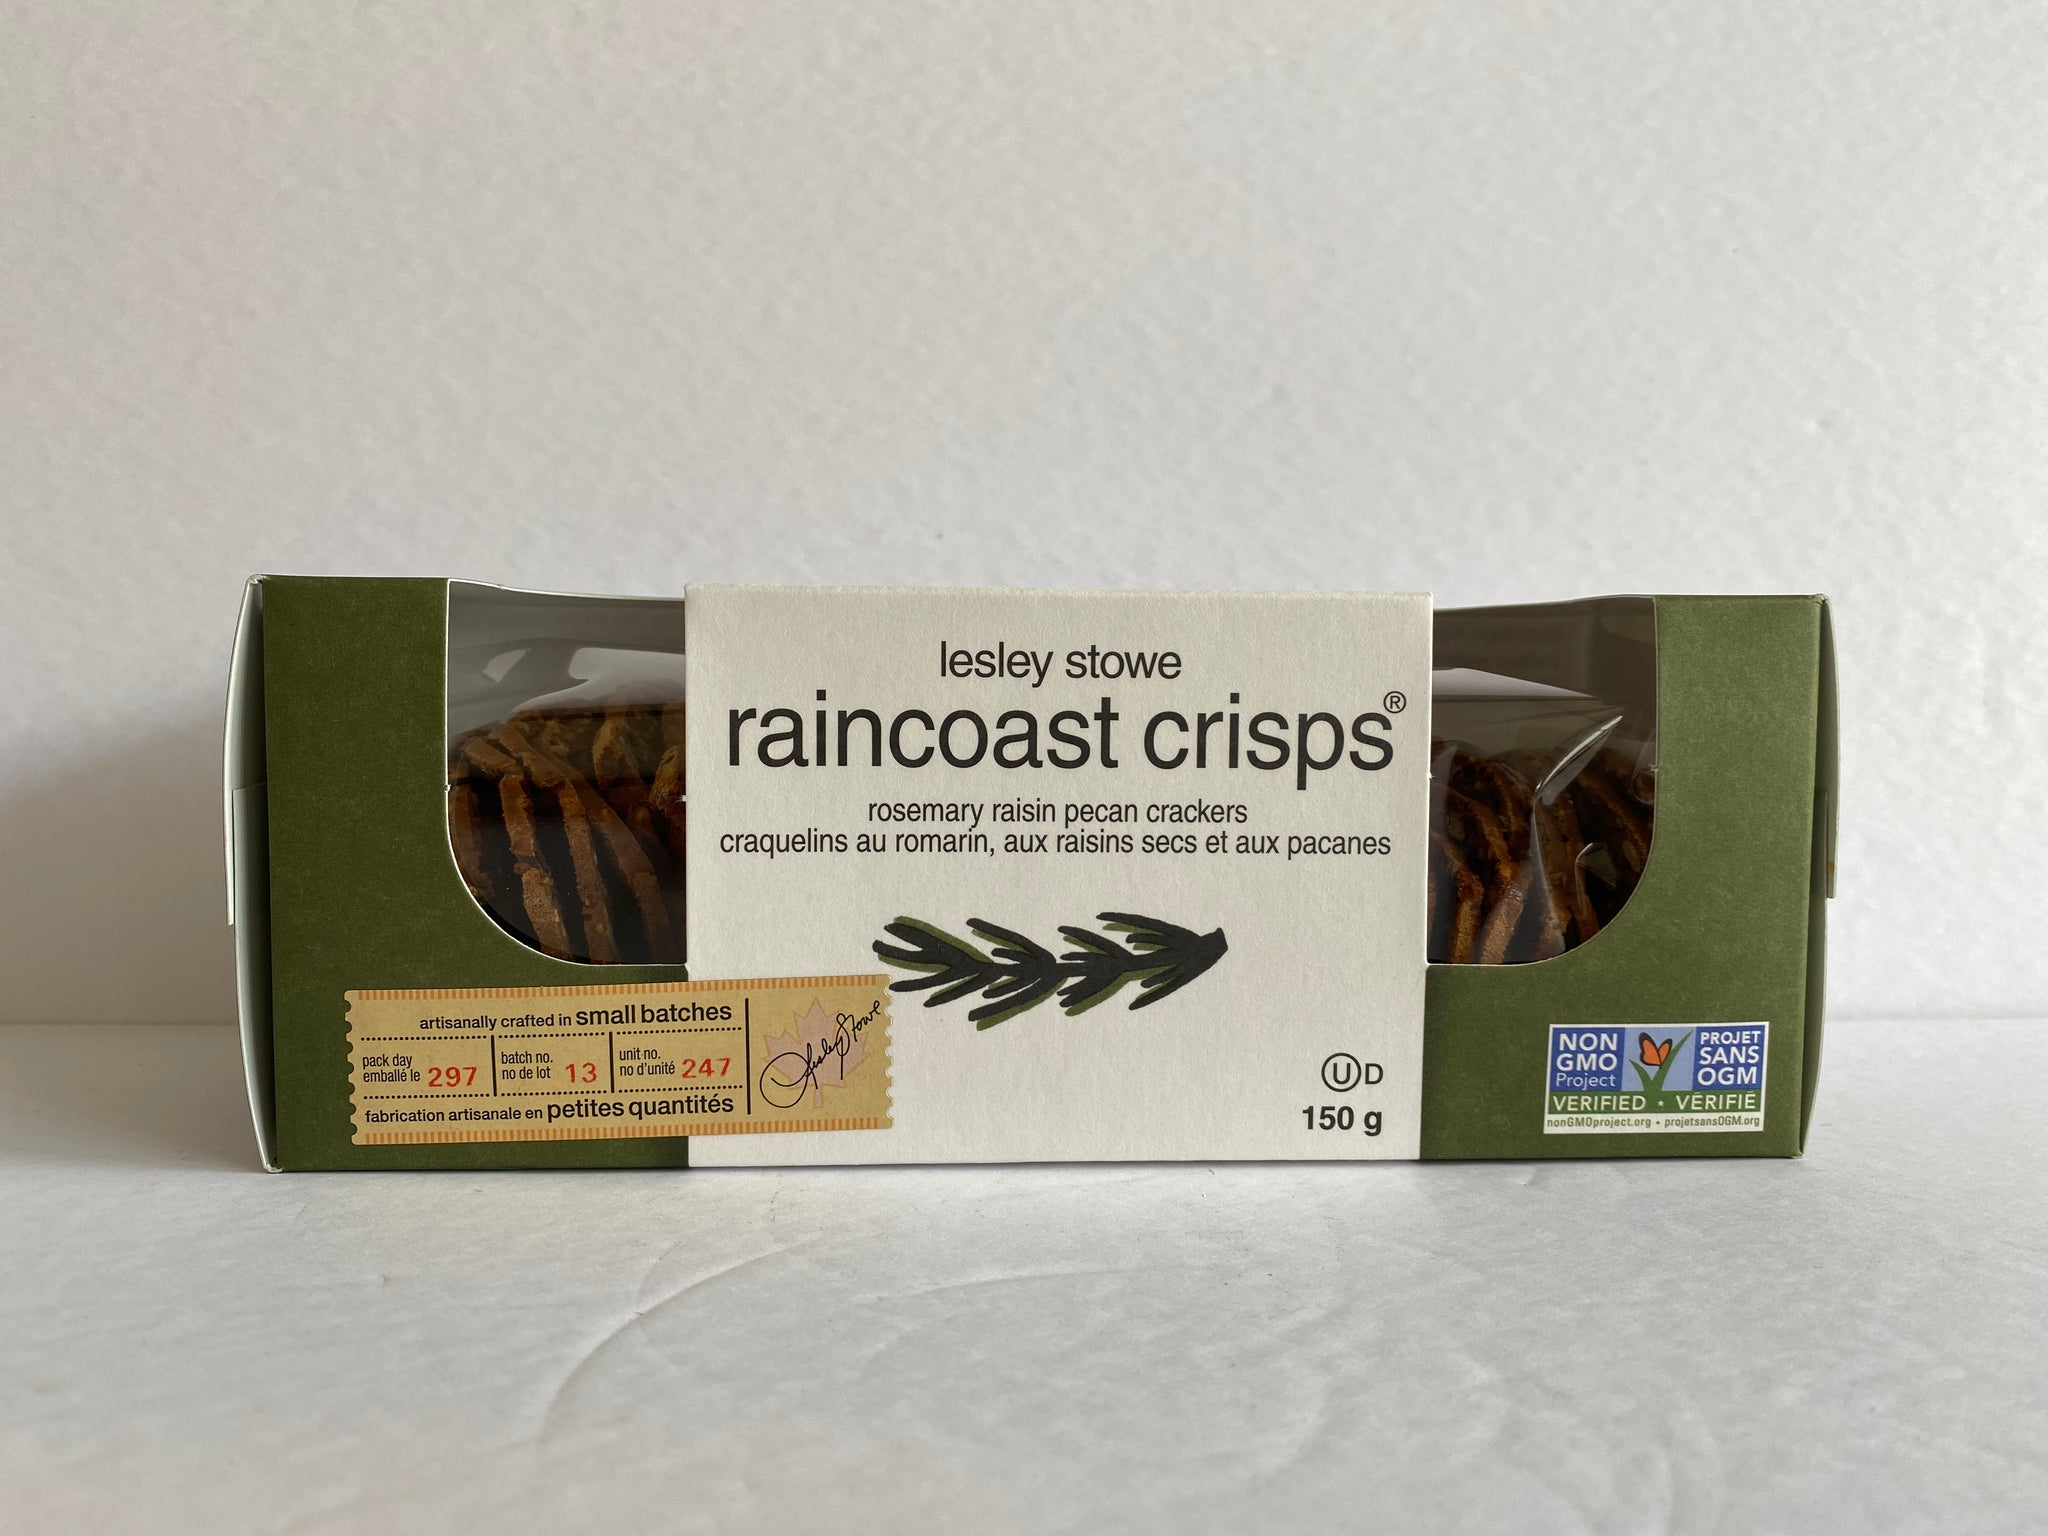 Raincoast Crisps Rosemary Raisin Pecan Crackers 150g